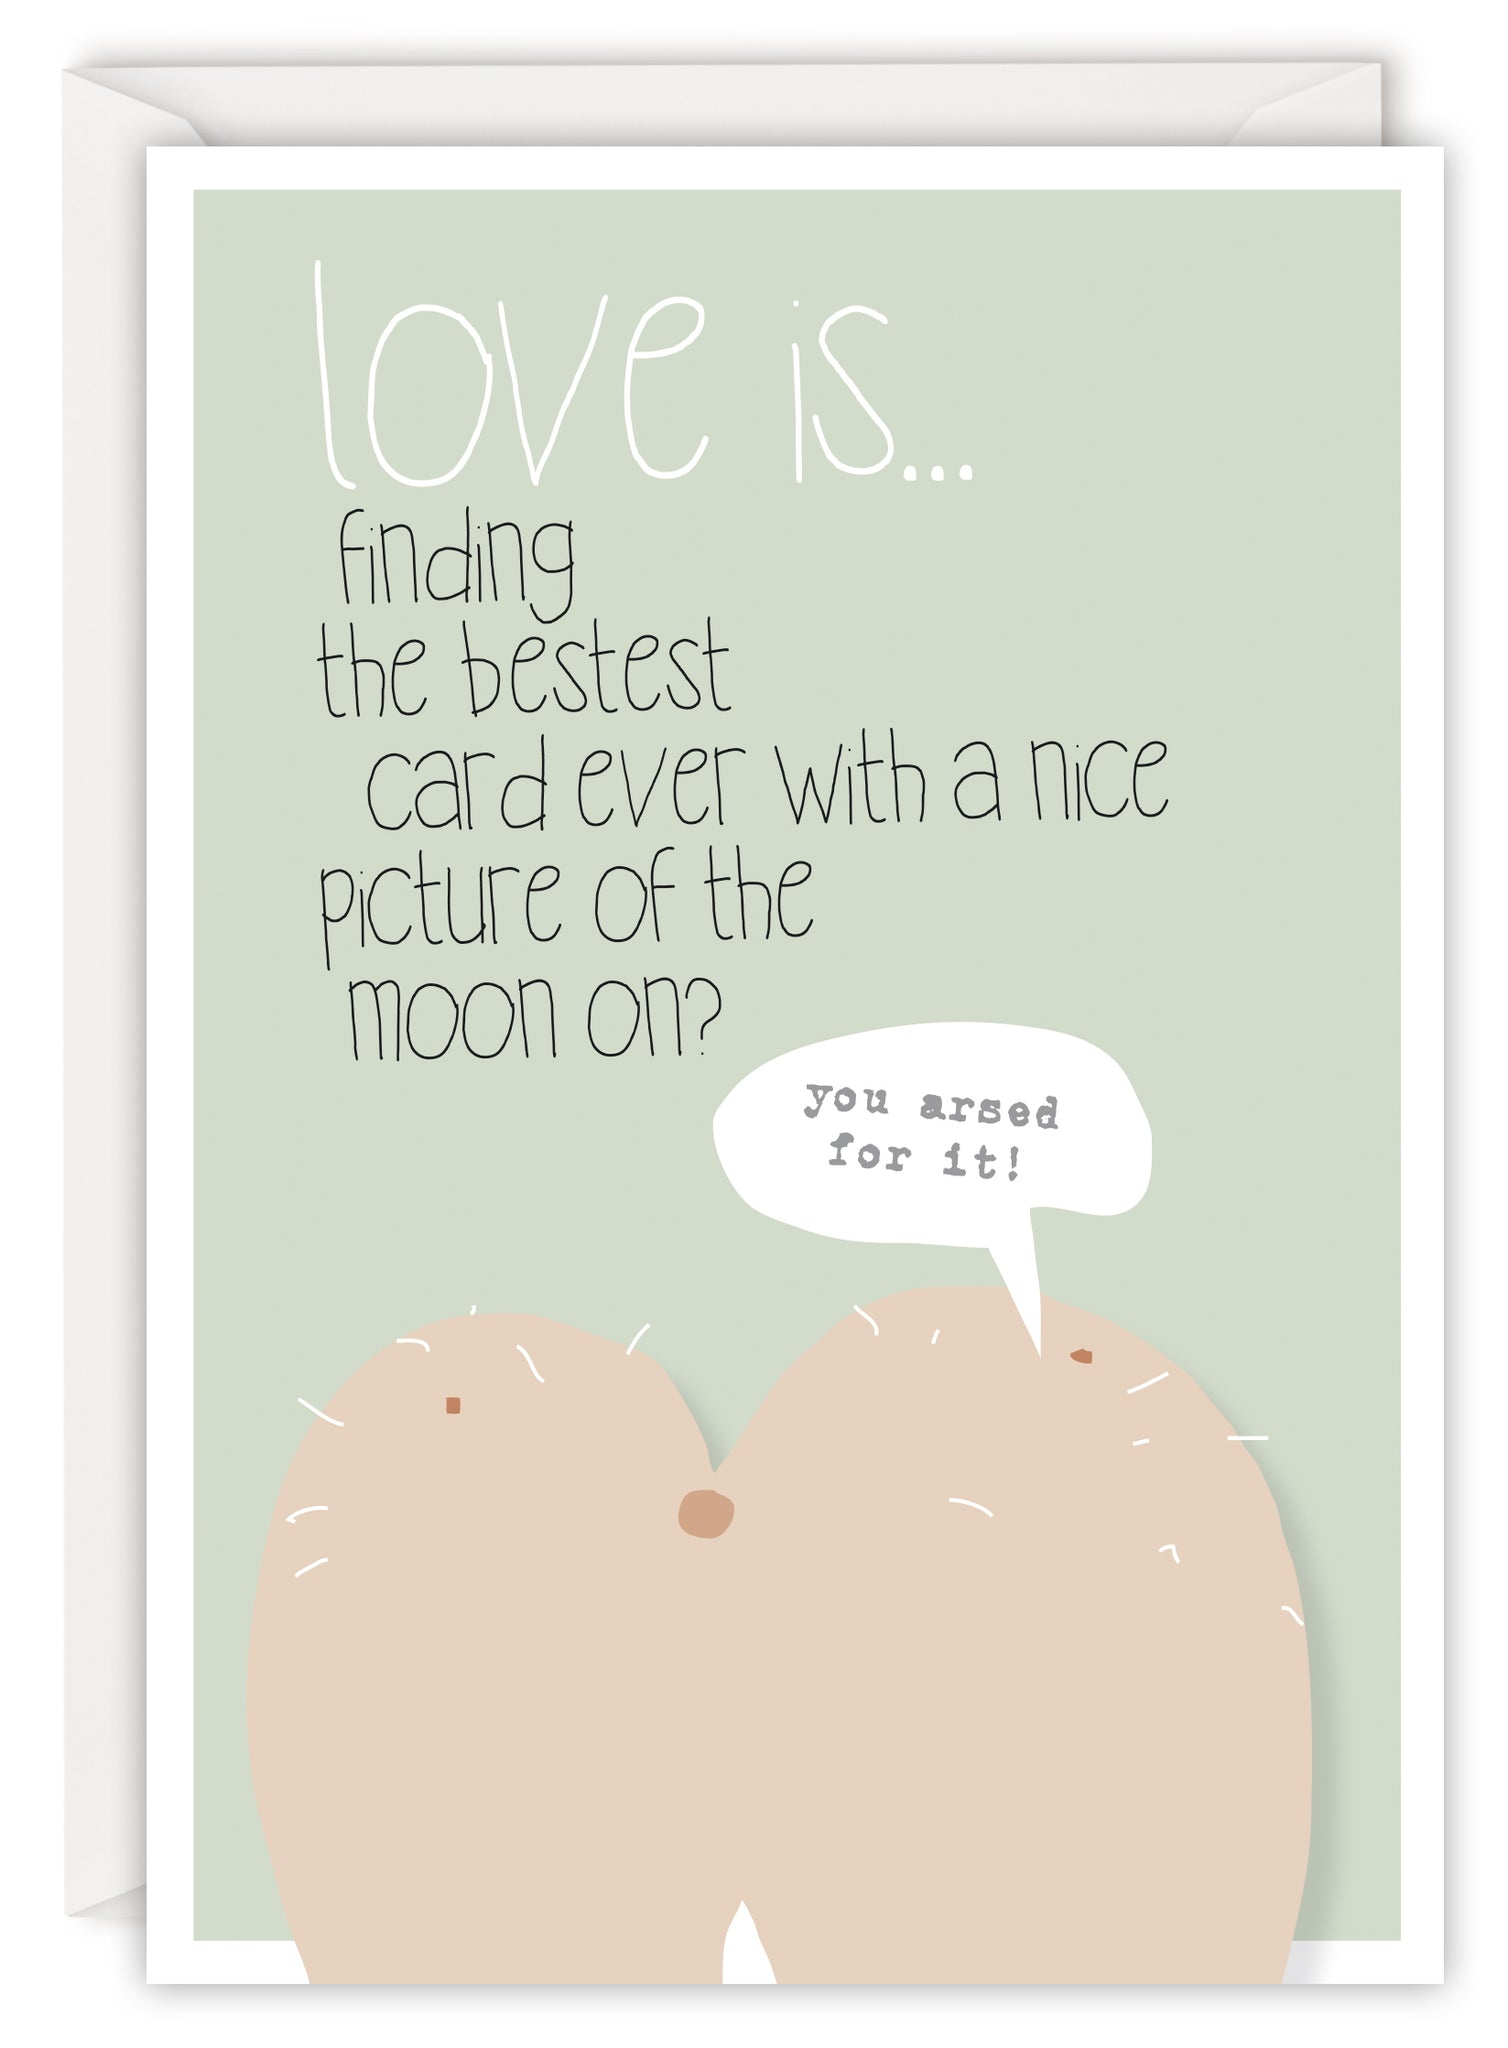 Love is… finding the bestest card ever with a nice picture of a moon on?